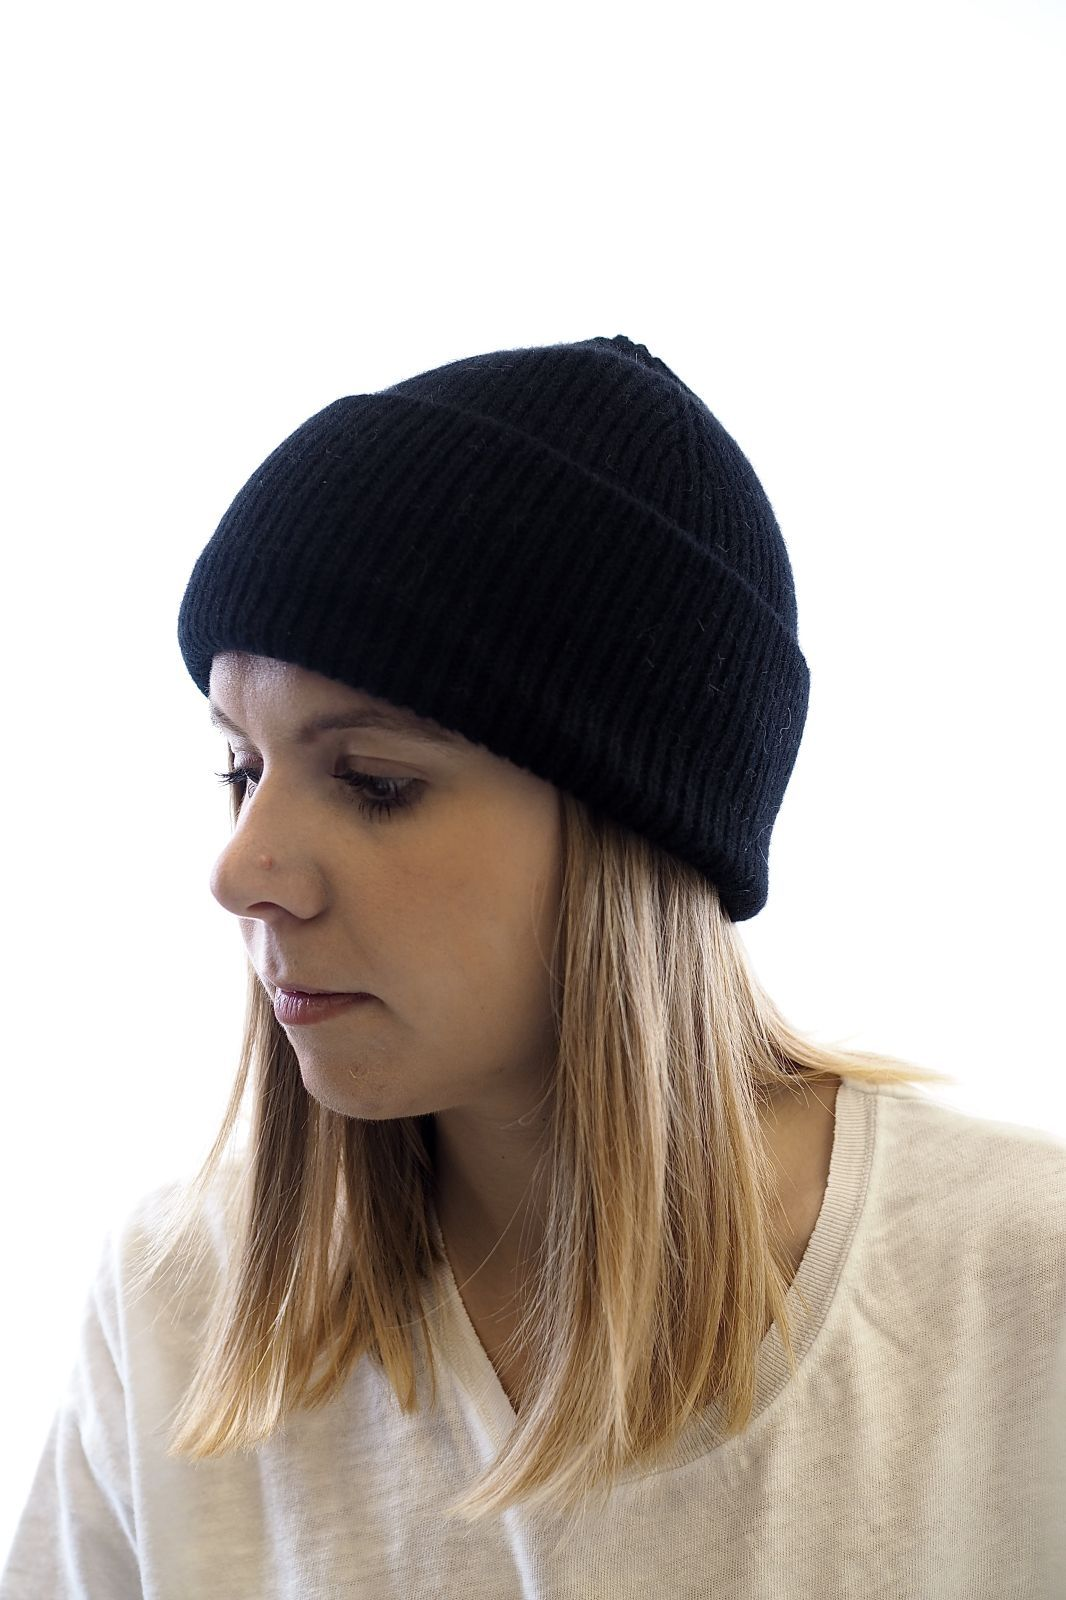 Le Bonnet Amsterdam bonnet Noir unisex (Bonnet A'DAM-Beanie uni - 7435 Beanie uni black) - Marine | Much more than shoes